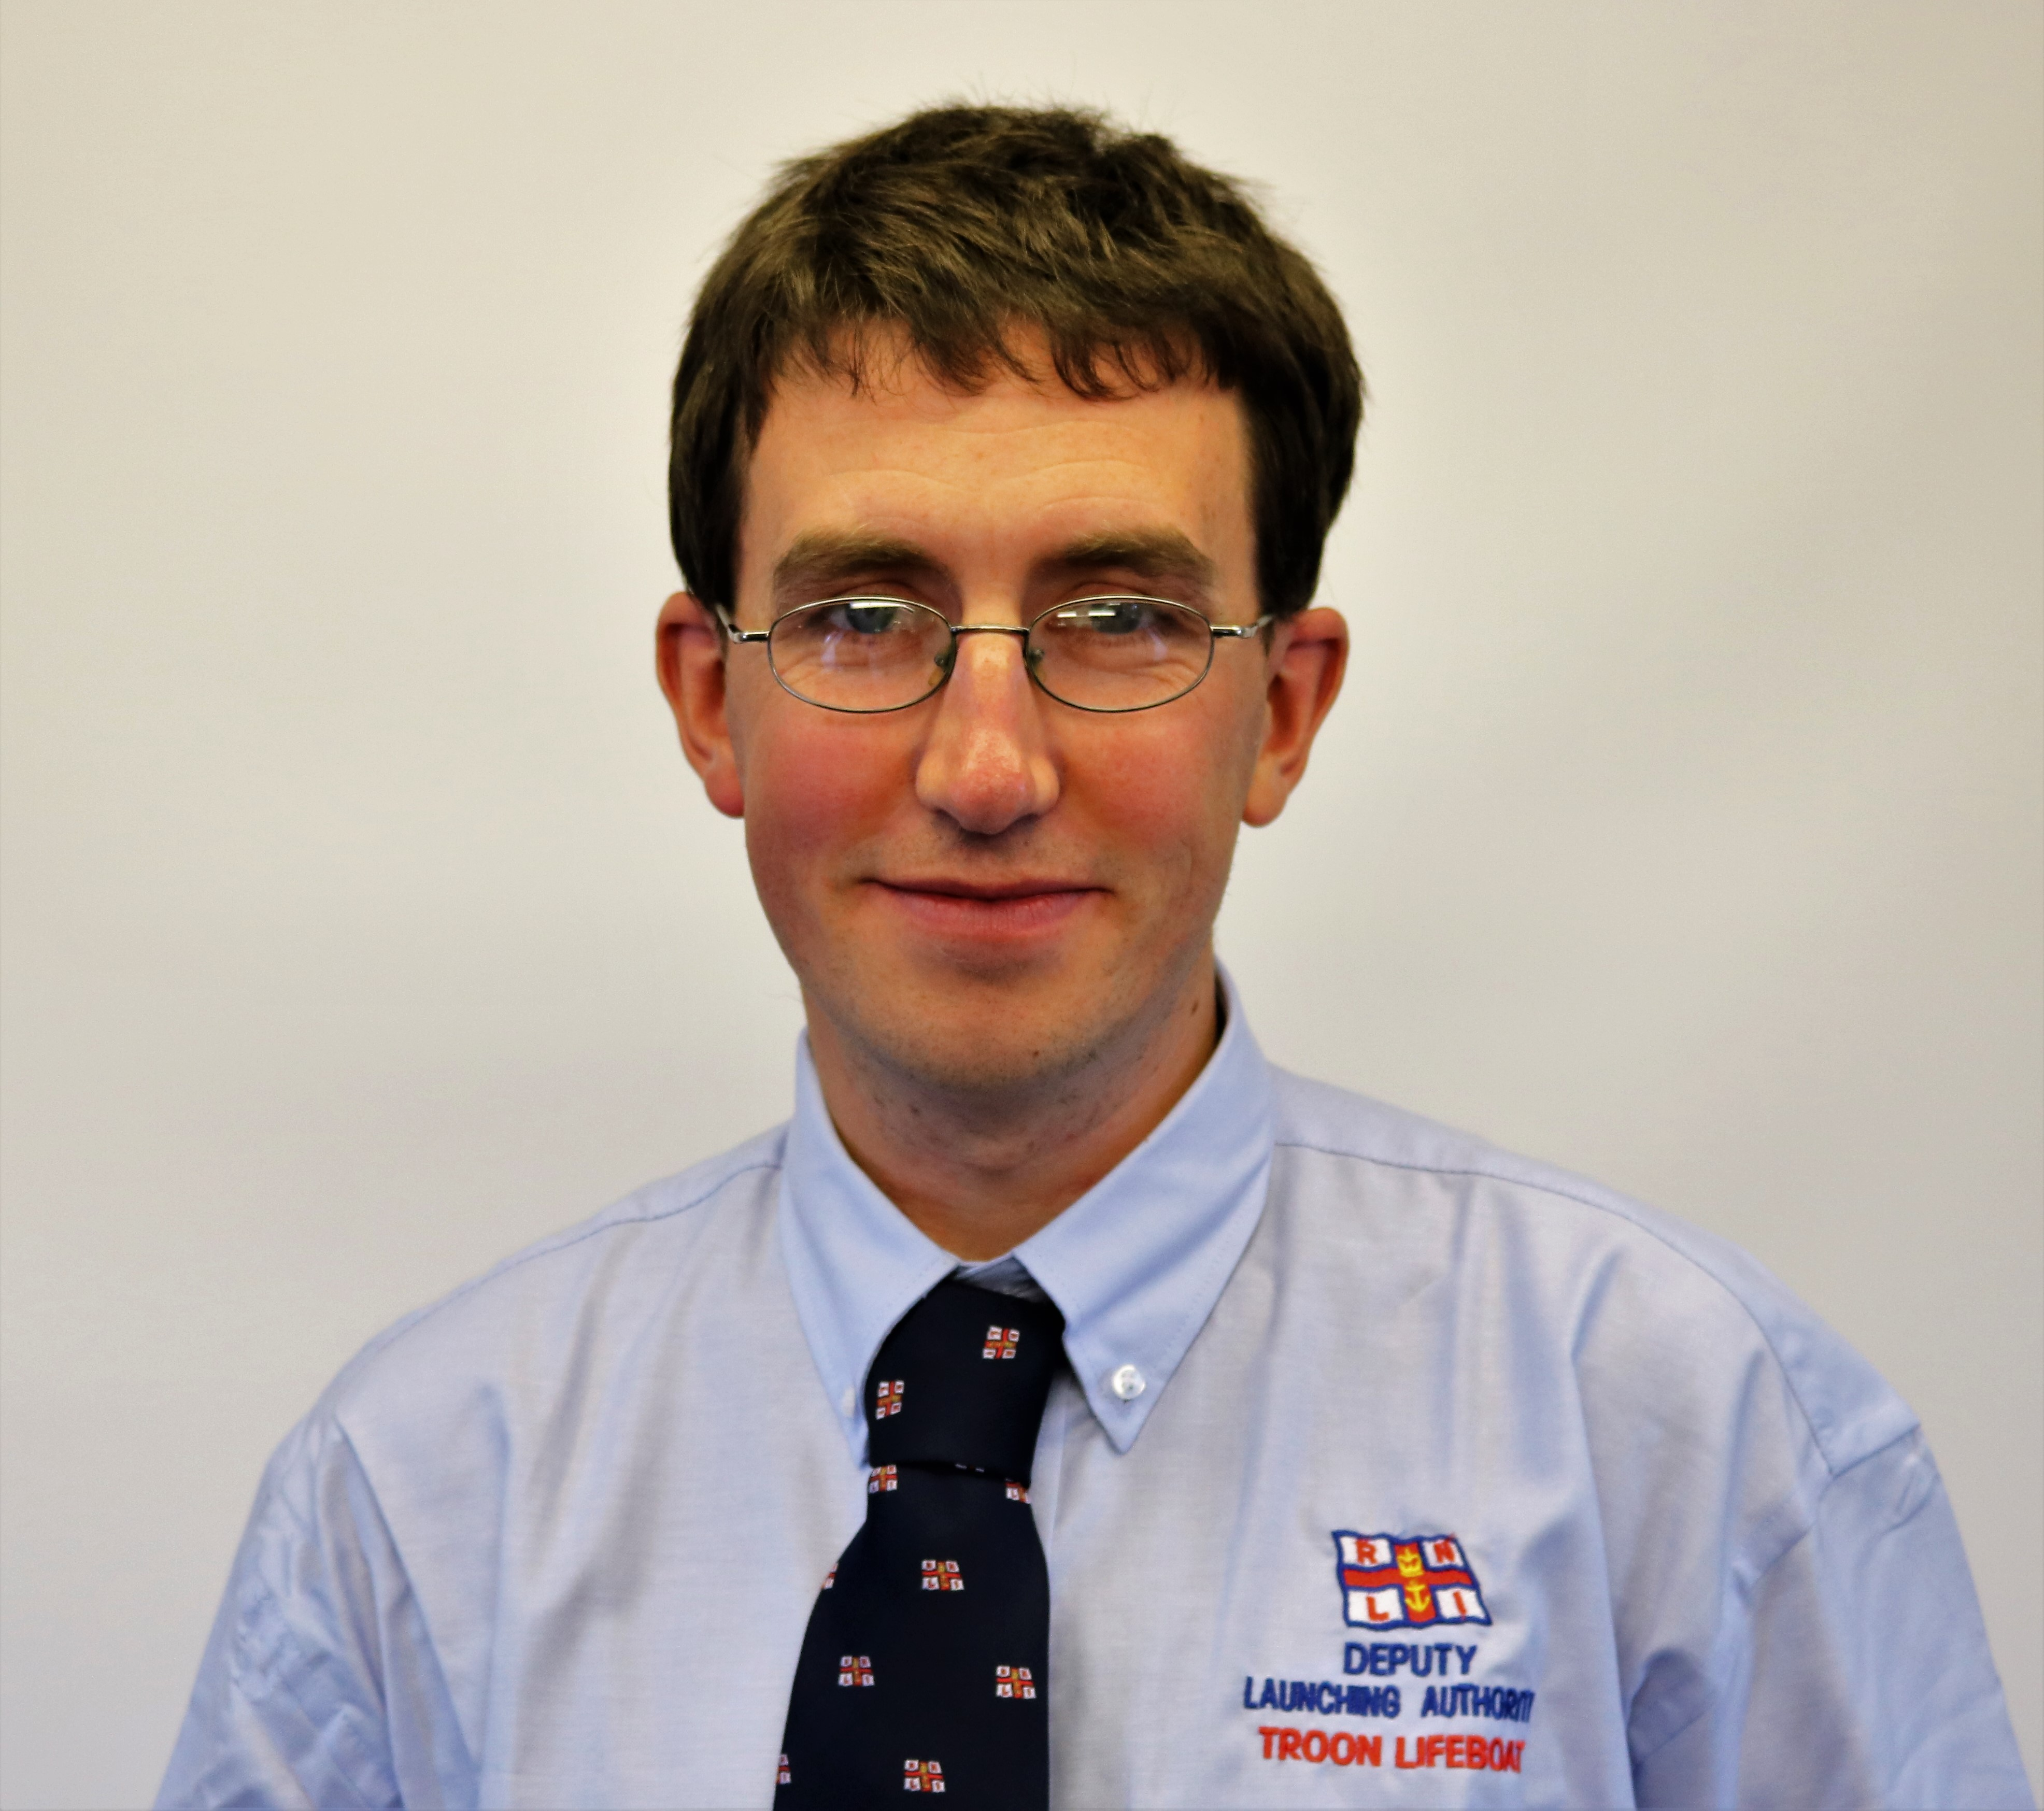 New Deputy Launching Authority for Troon Lifeboat - David Walker